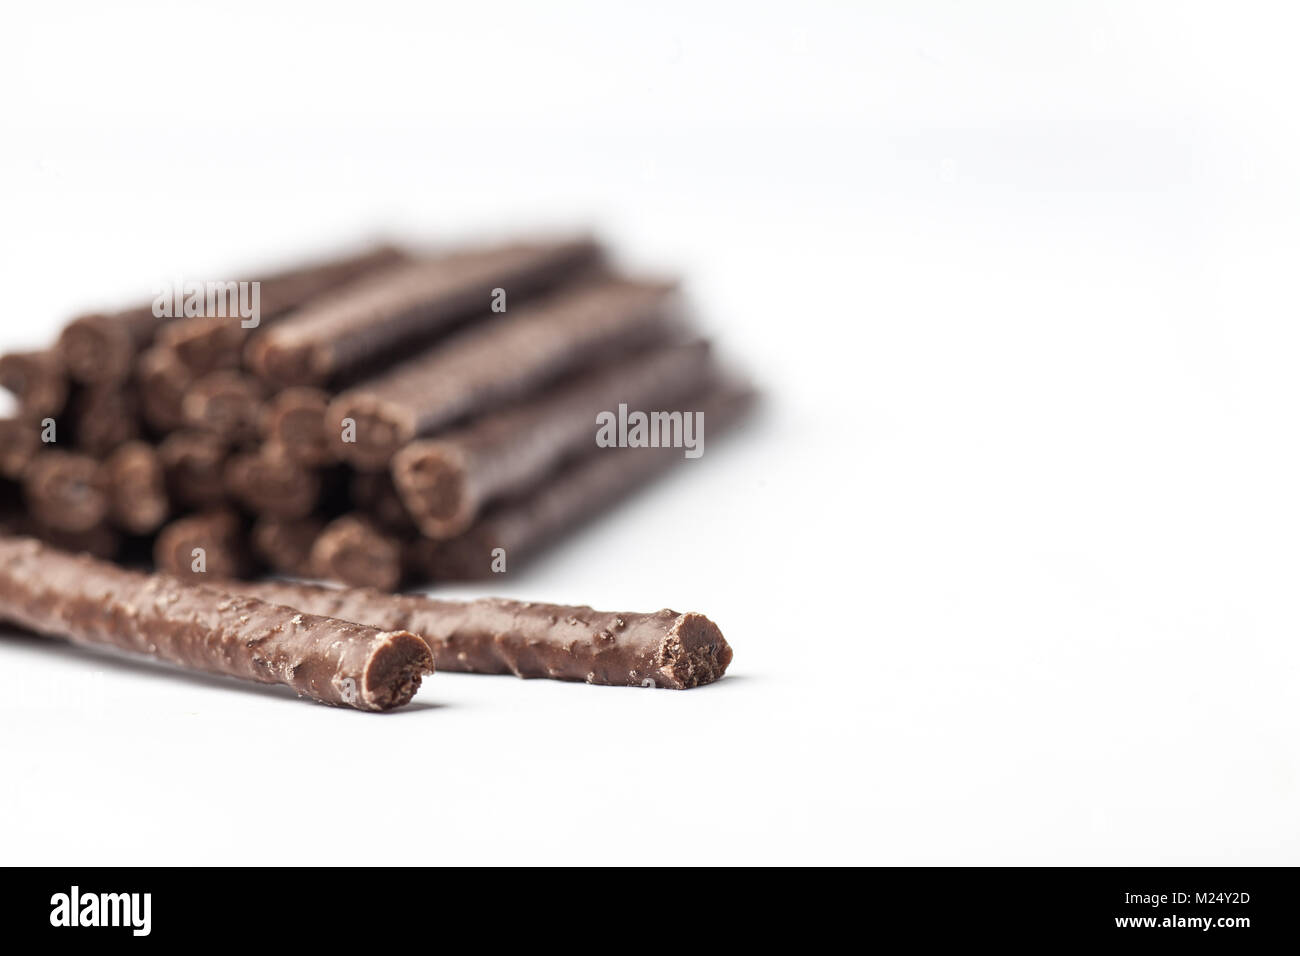 Chocolate Flavoured Stick Candy close up with pile in background - Stock Image